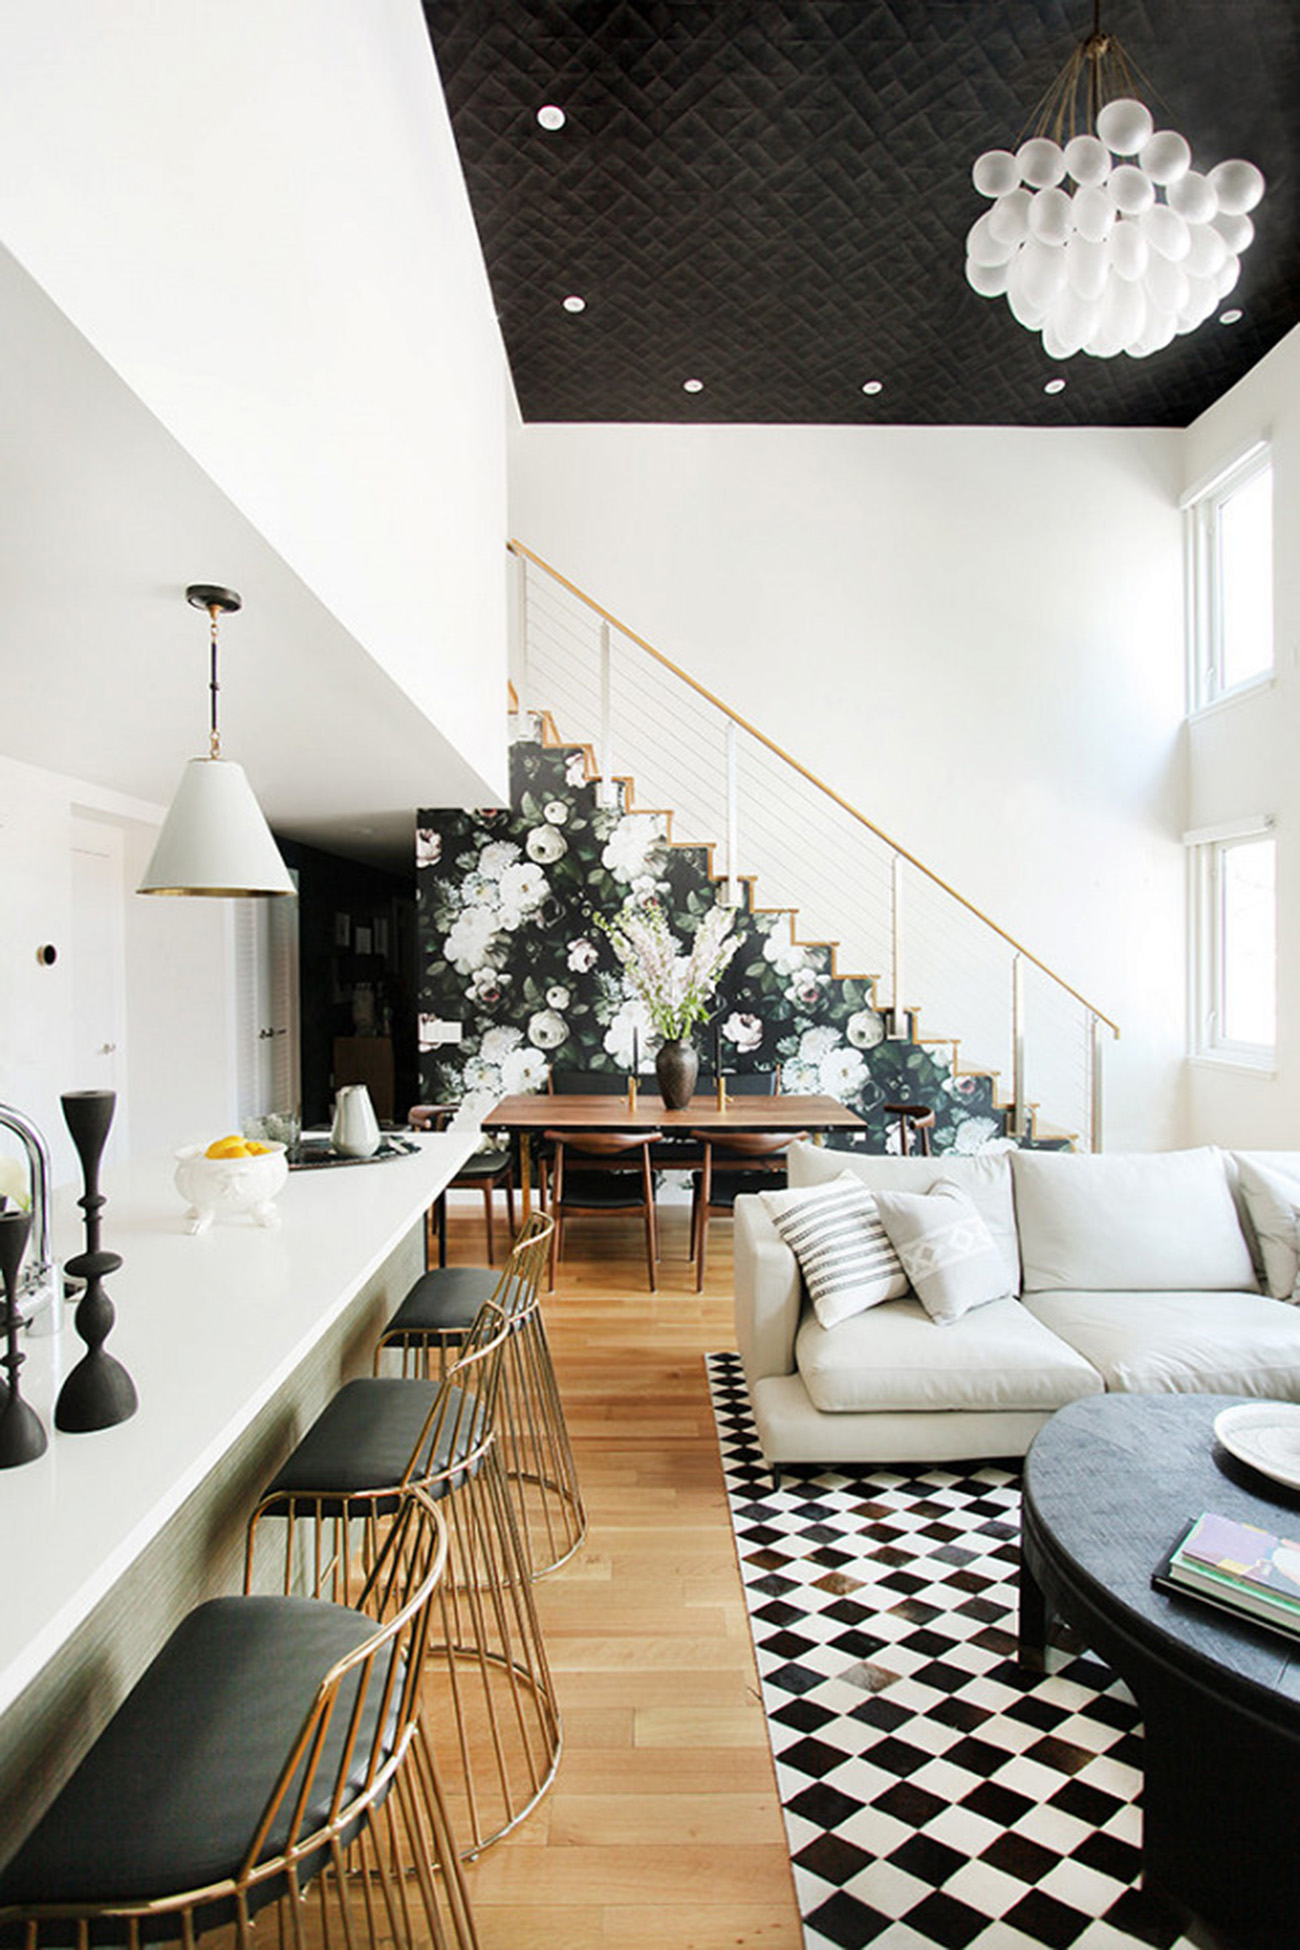 tour-a-modern-brooklyn-home-with-gorgeous-accent-walls-1954277-1477525568.640x0c